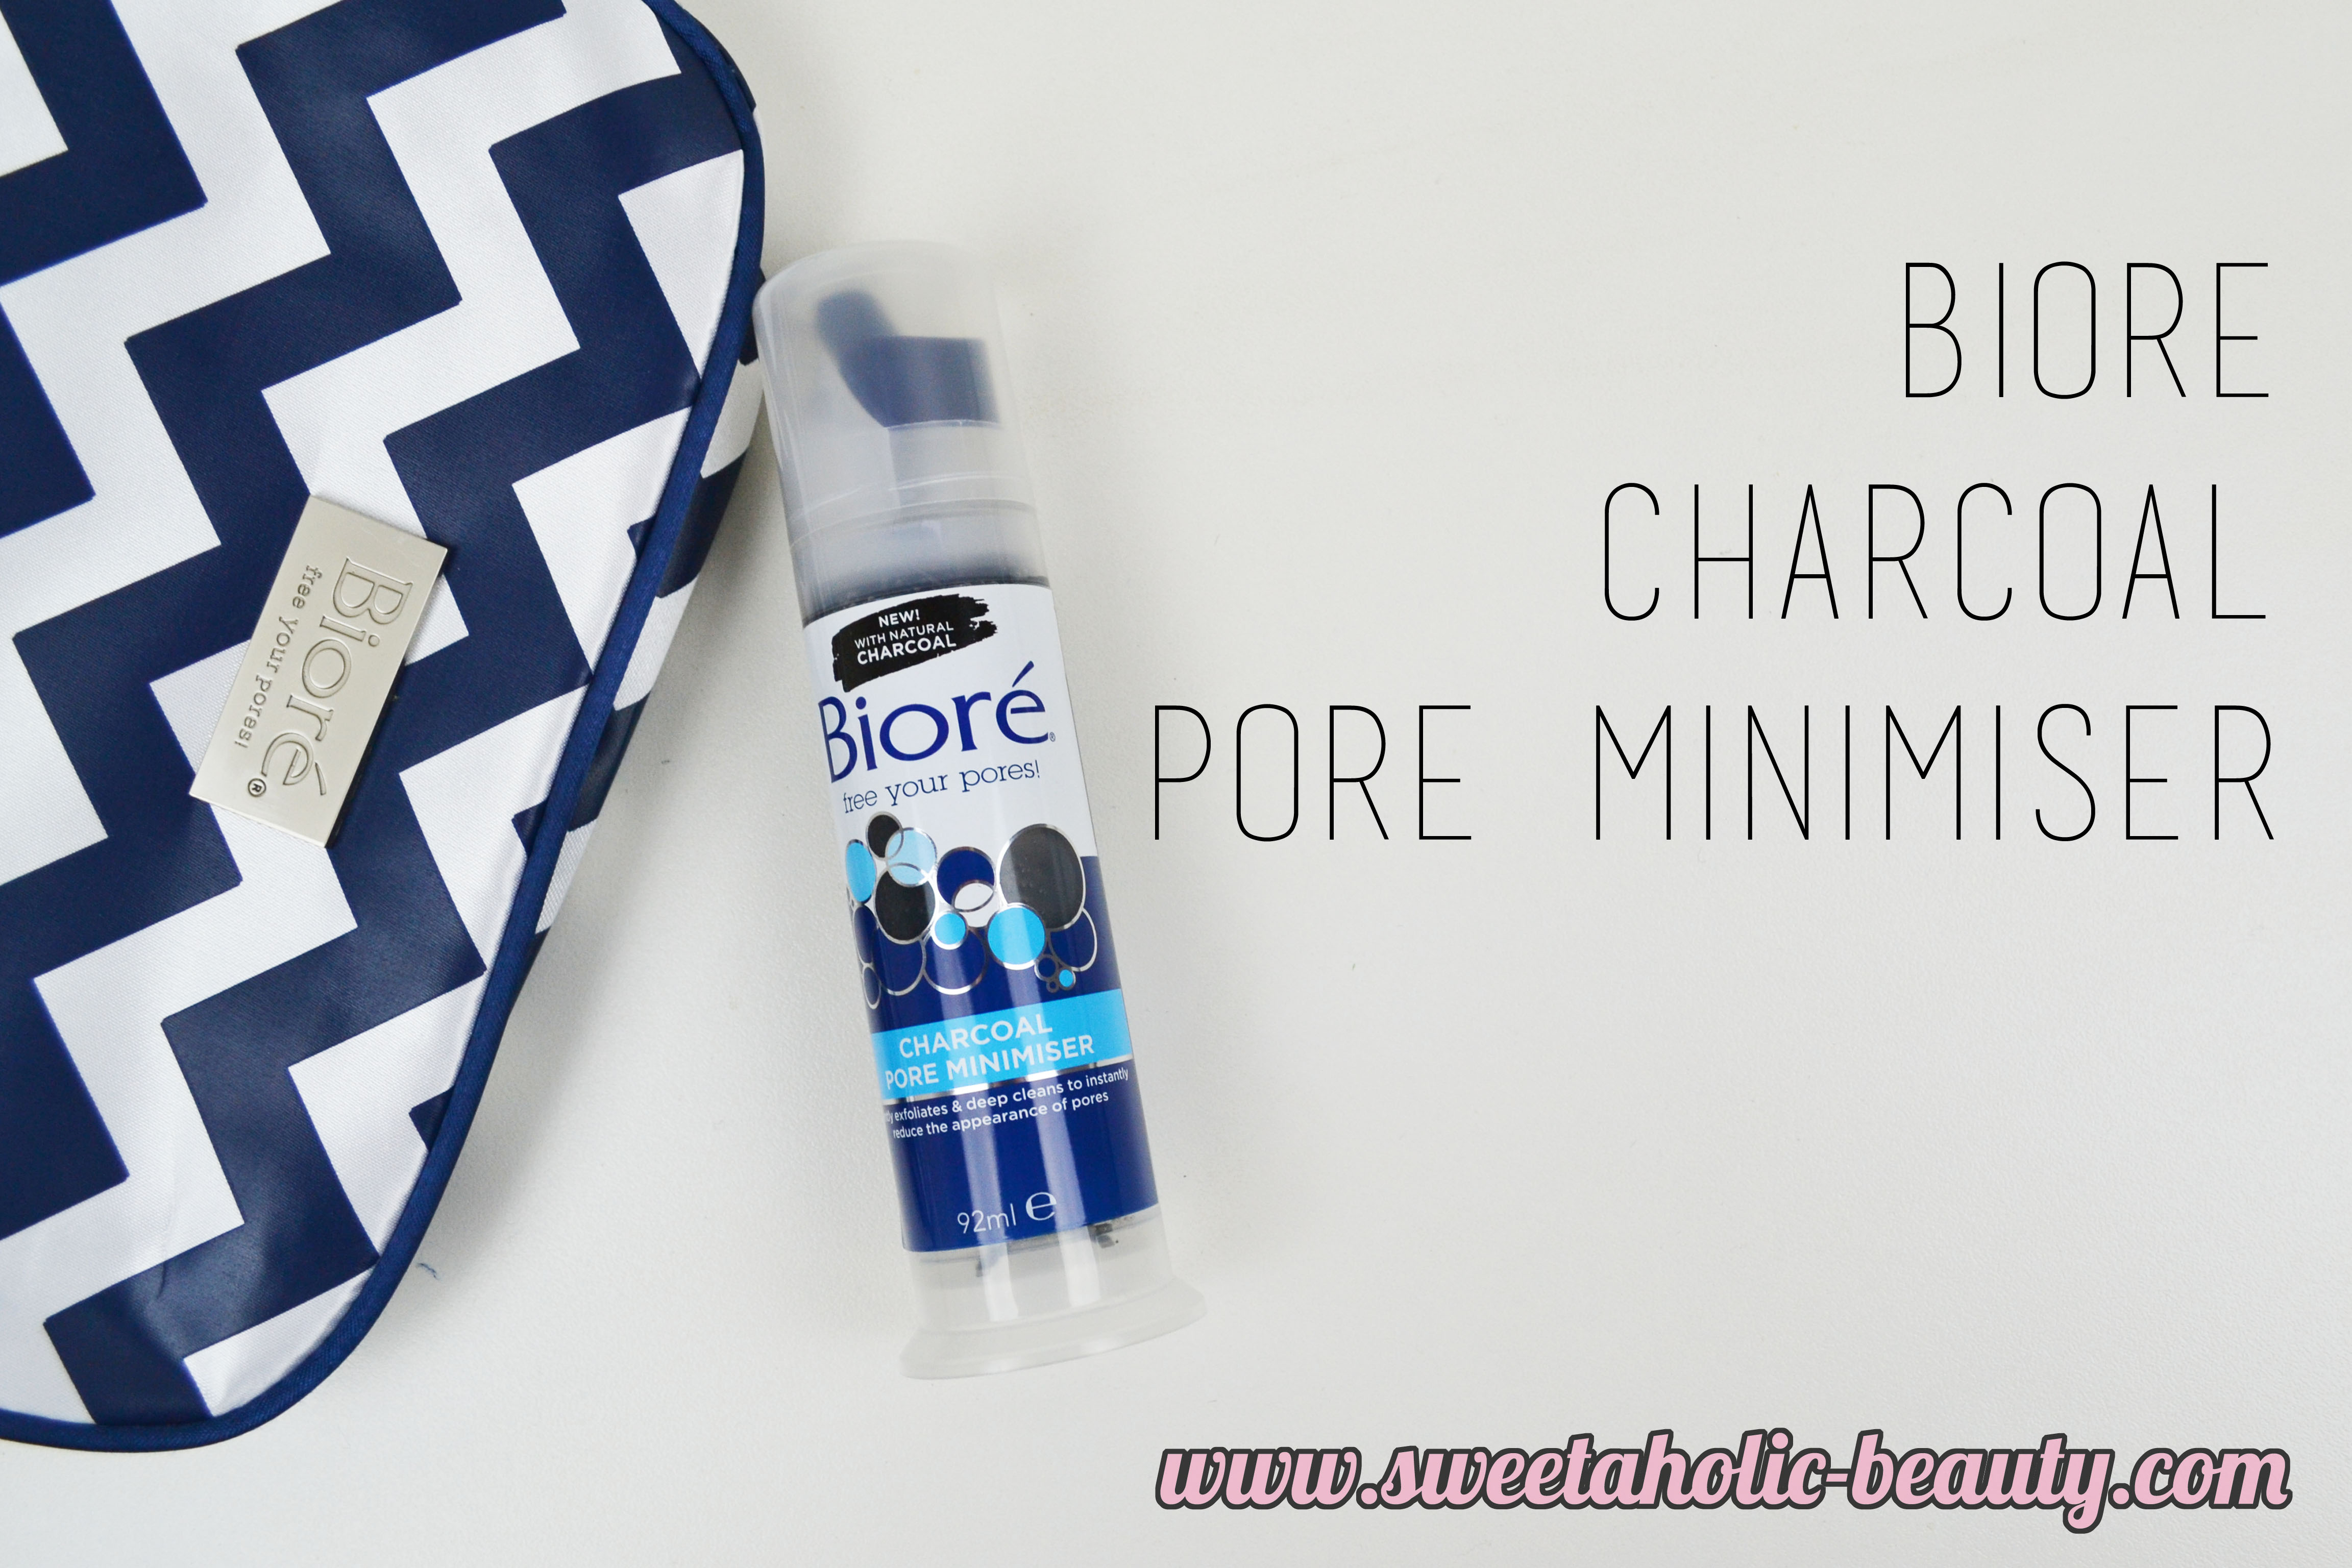 Biore Charcoal Pore Minimiser Review - Sweetaholic Beauty